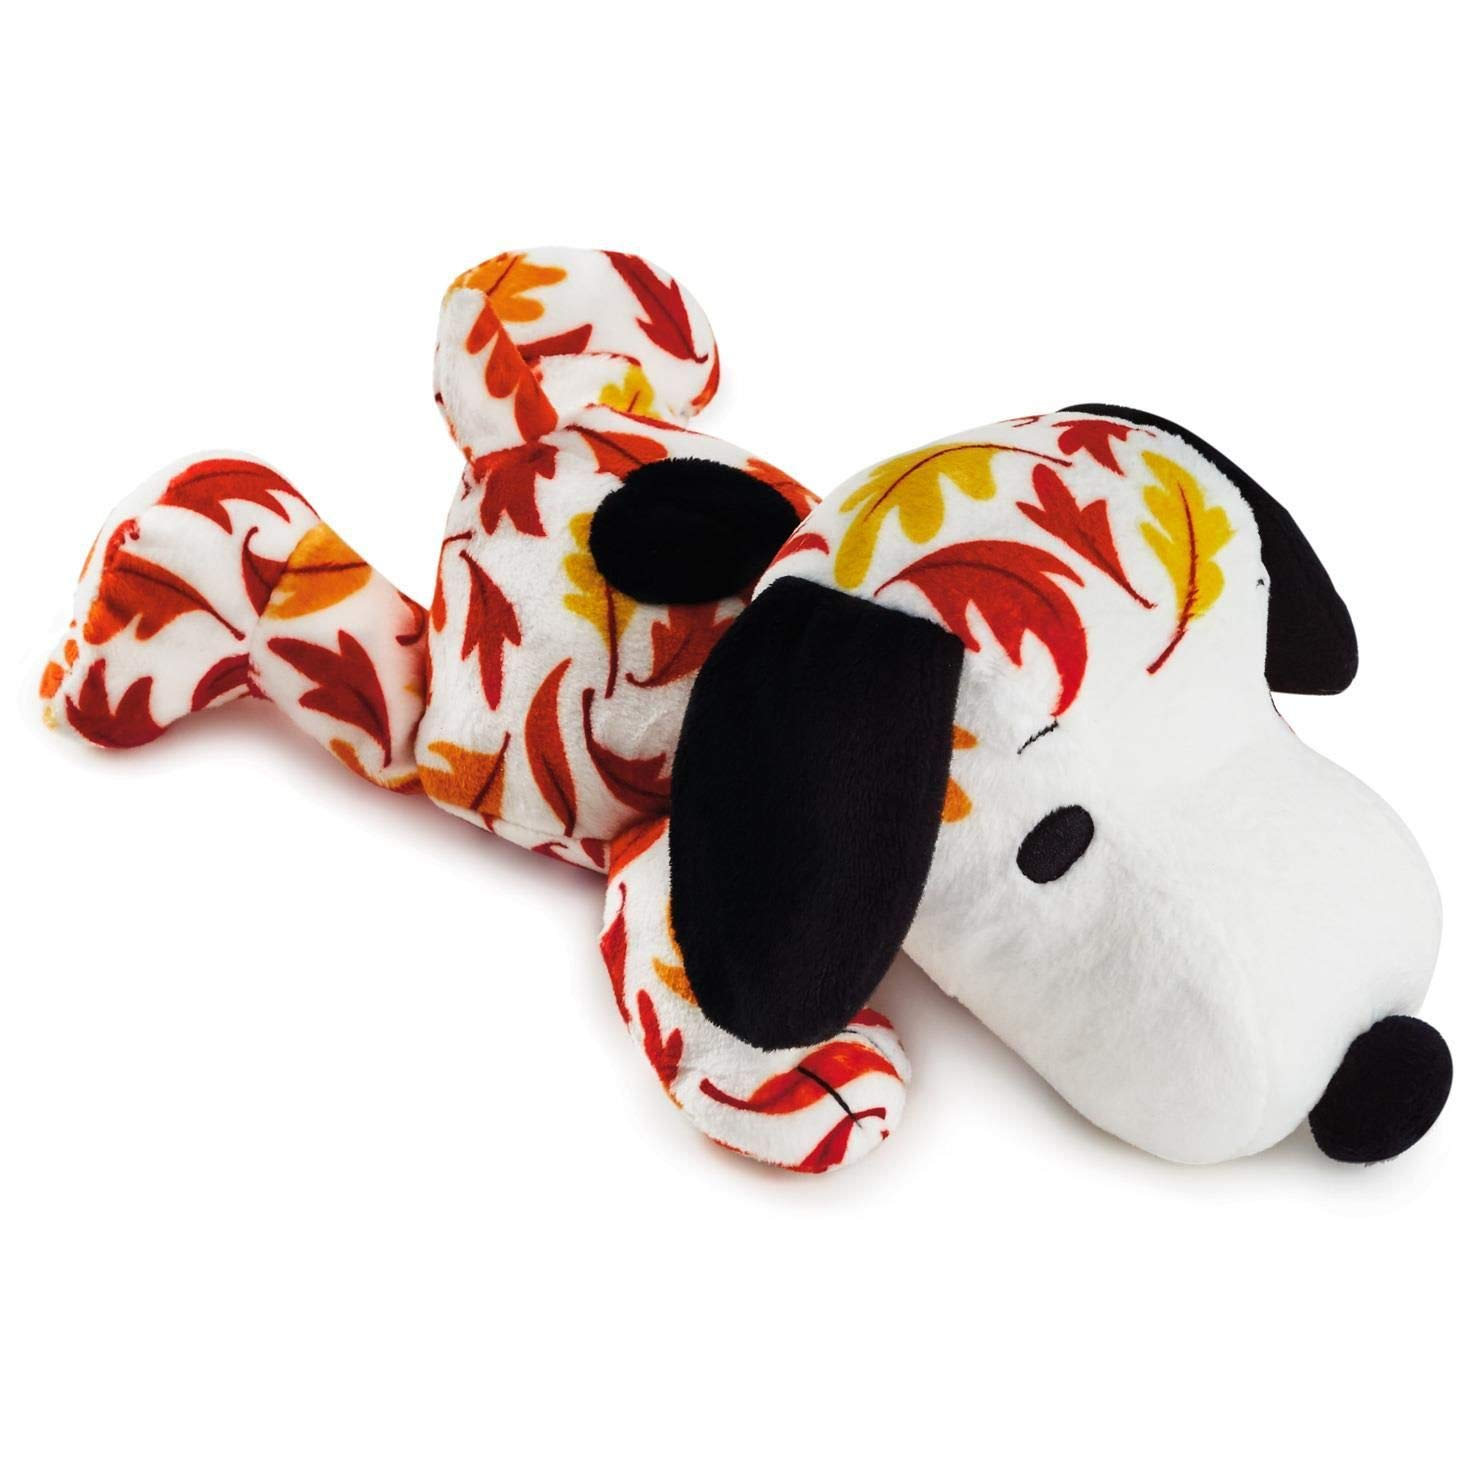 Hallmark Peanuts Snoopy Fall Leaves Print Floppy Stuffed Animal 11